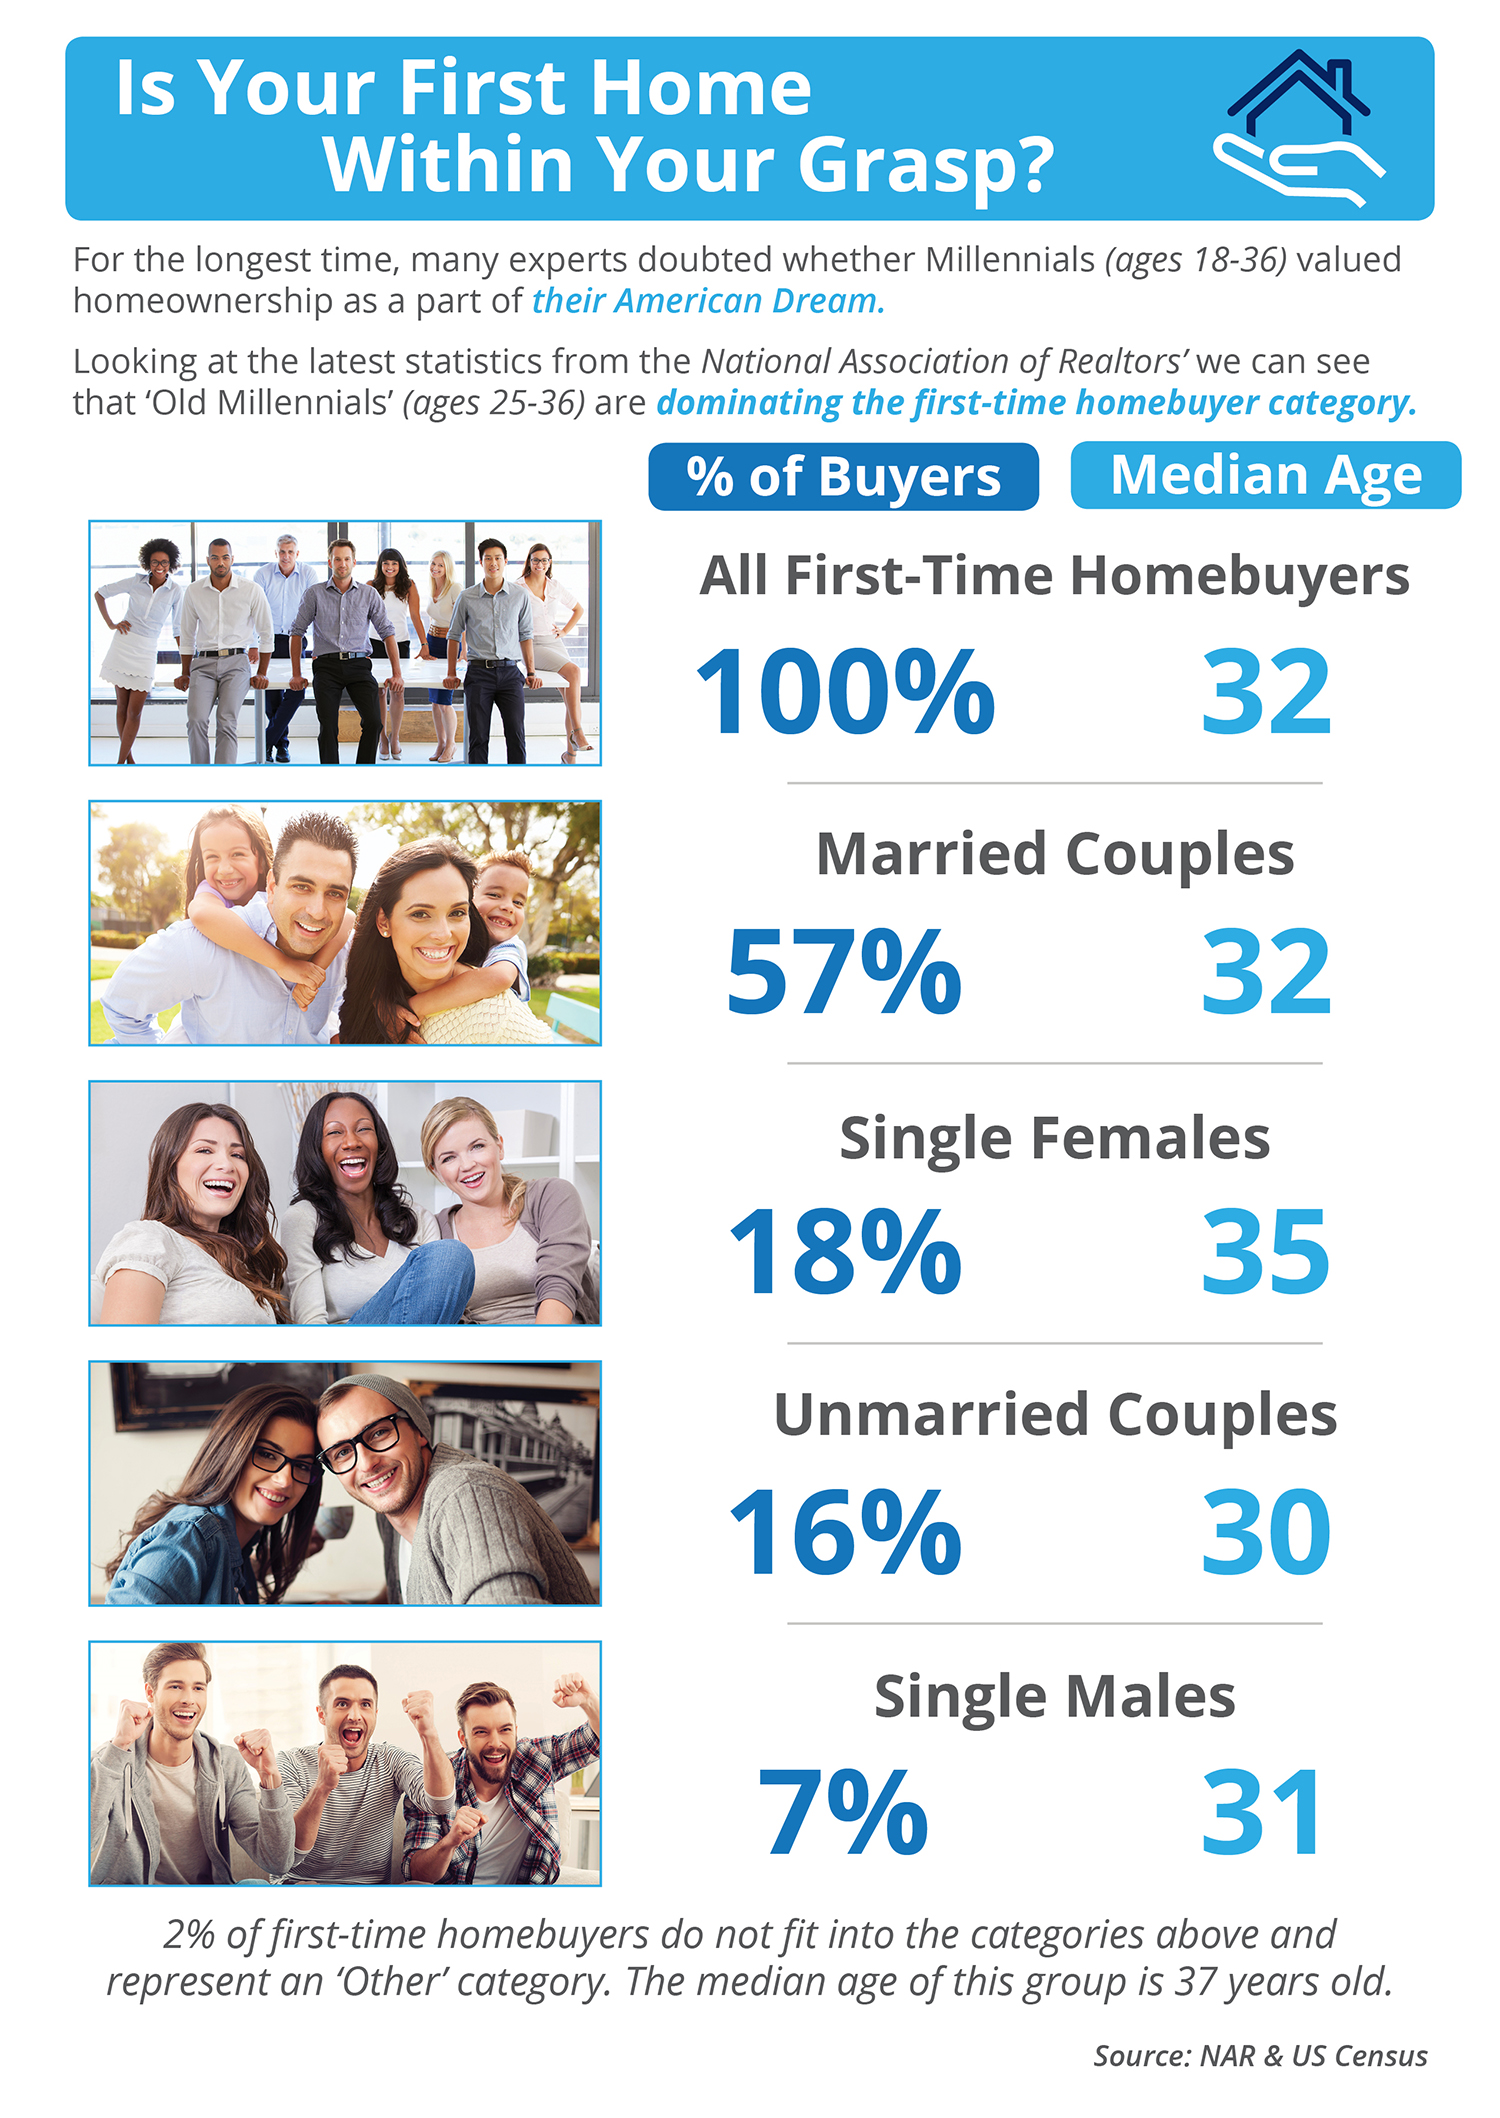 Is Your First Home Within Your Grasp Now? [INFOGRAPHIC]